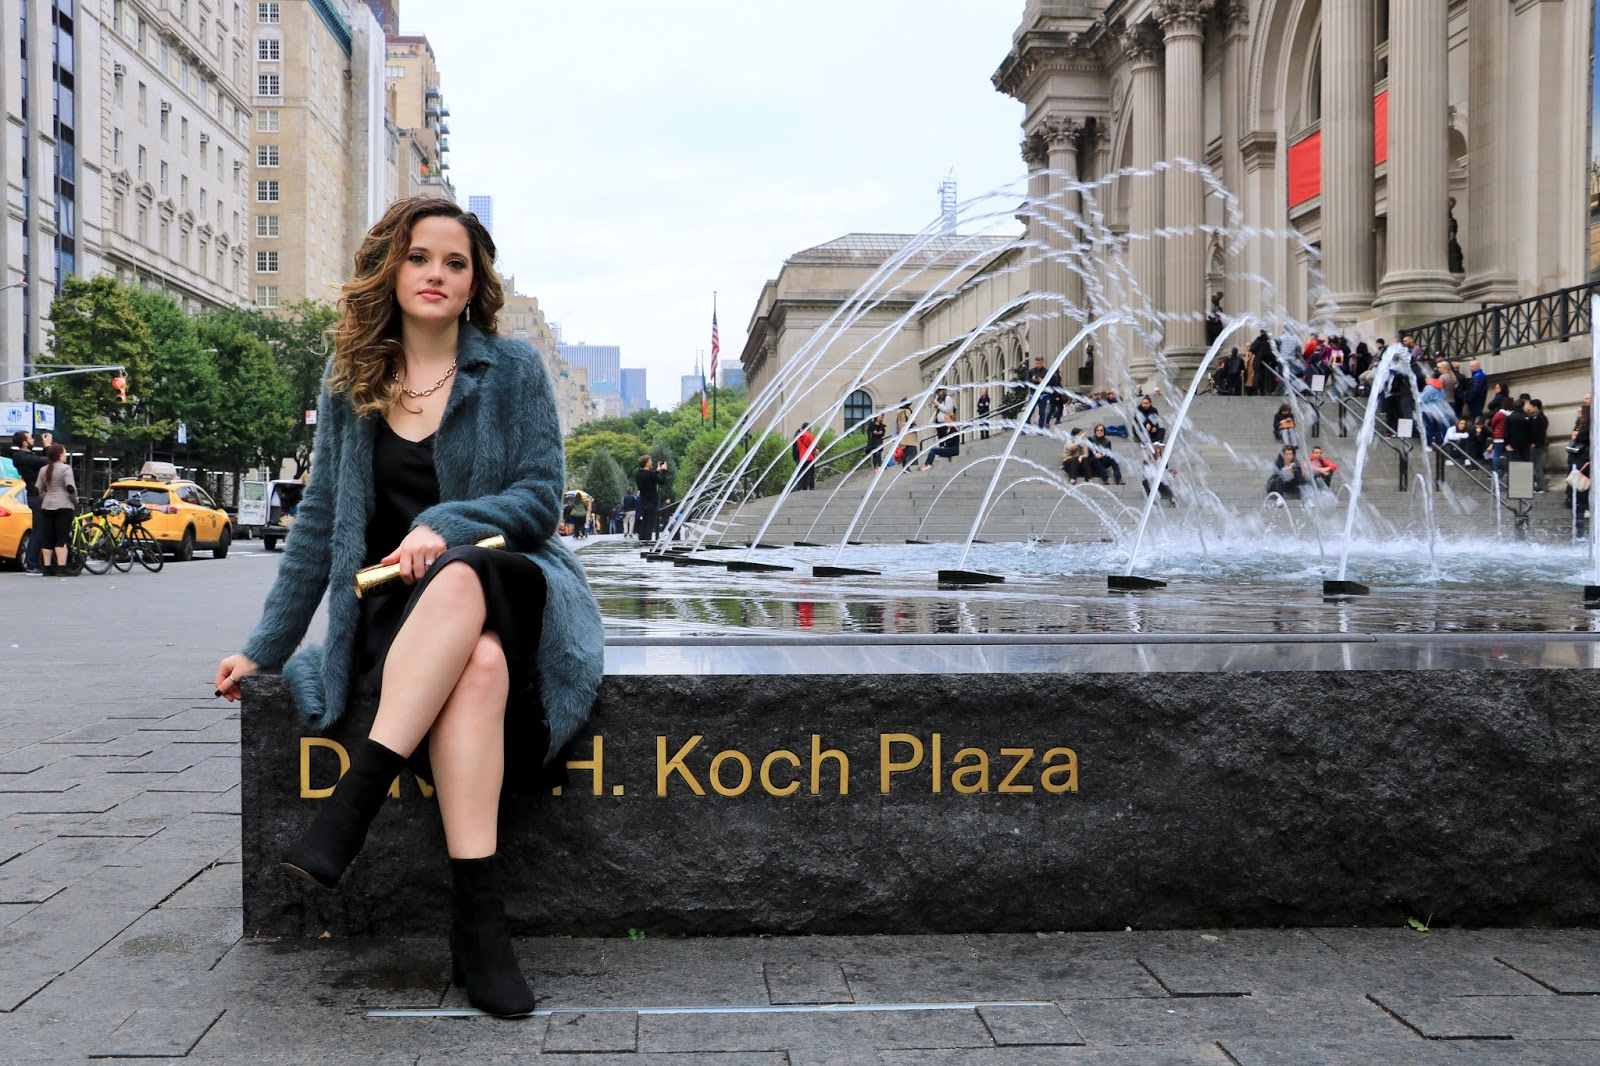 Nyc fashion blogger Kathleen Harper posing for photos outside of The MET.